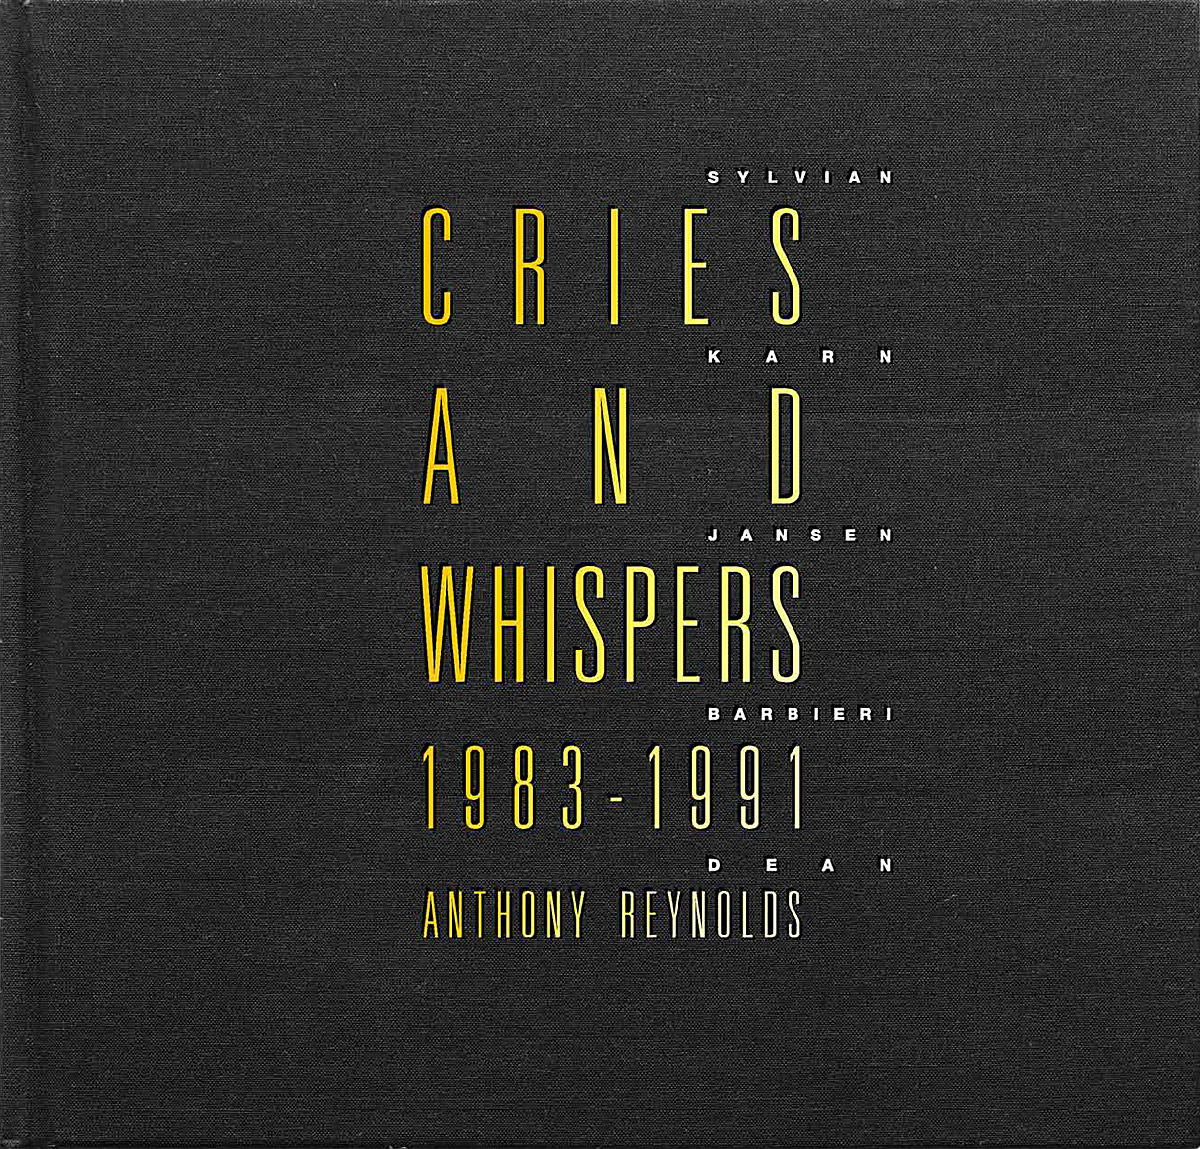 Cries and Whispers 1983-1991